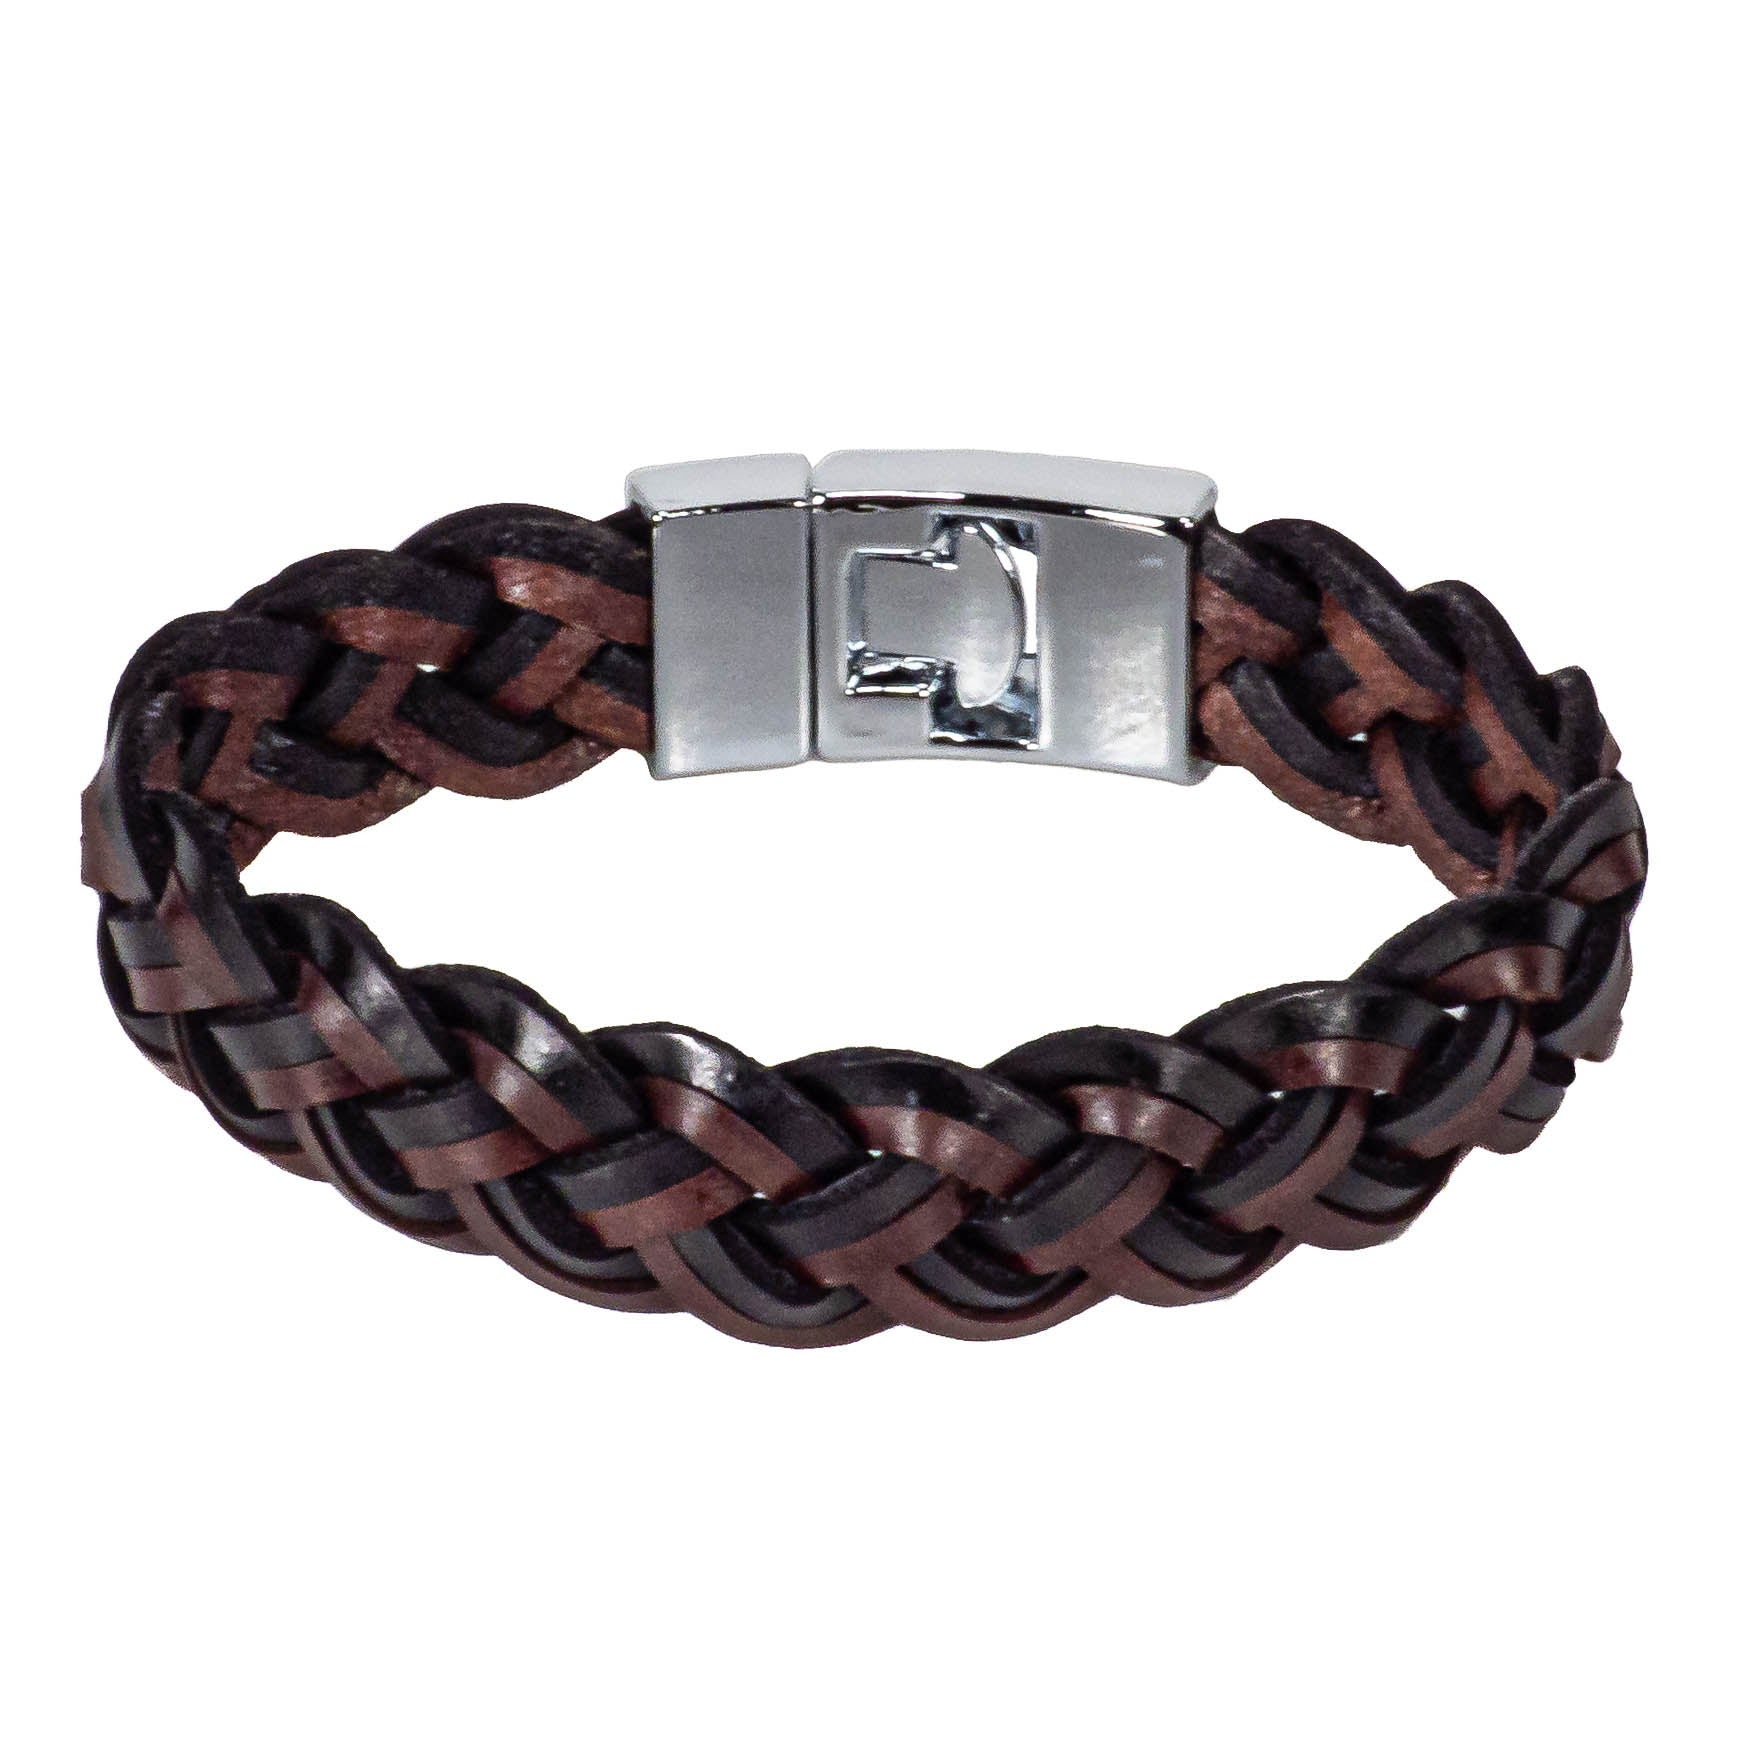 Braided Mixed Black & Dark Brown Leather Bracelet